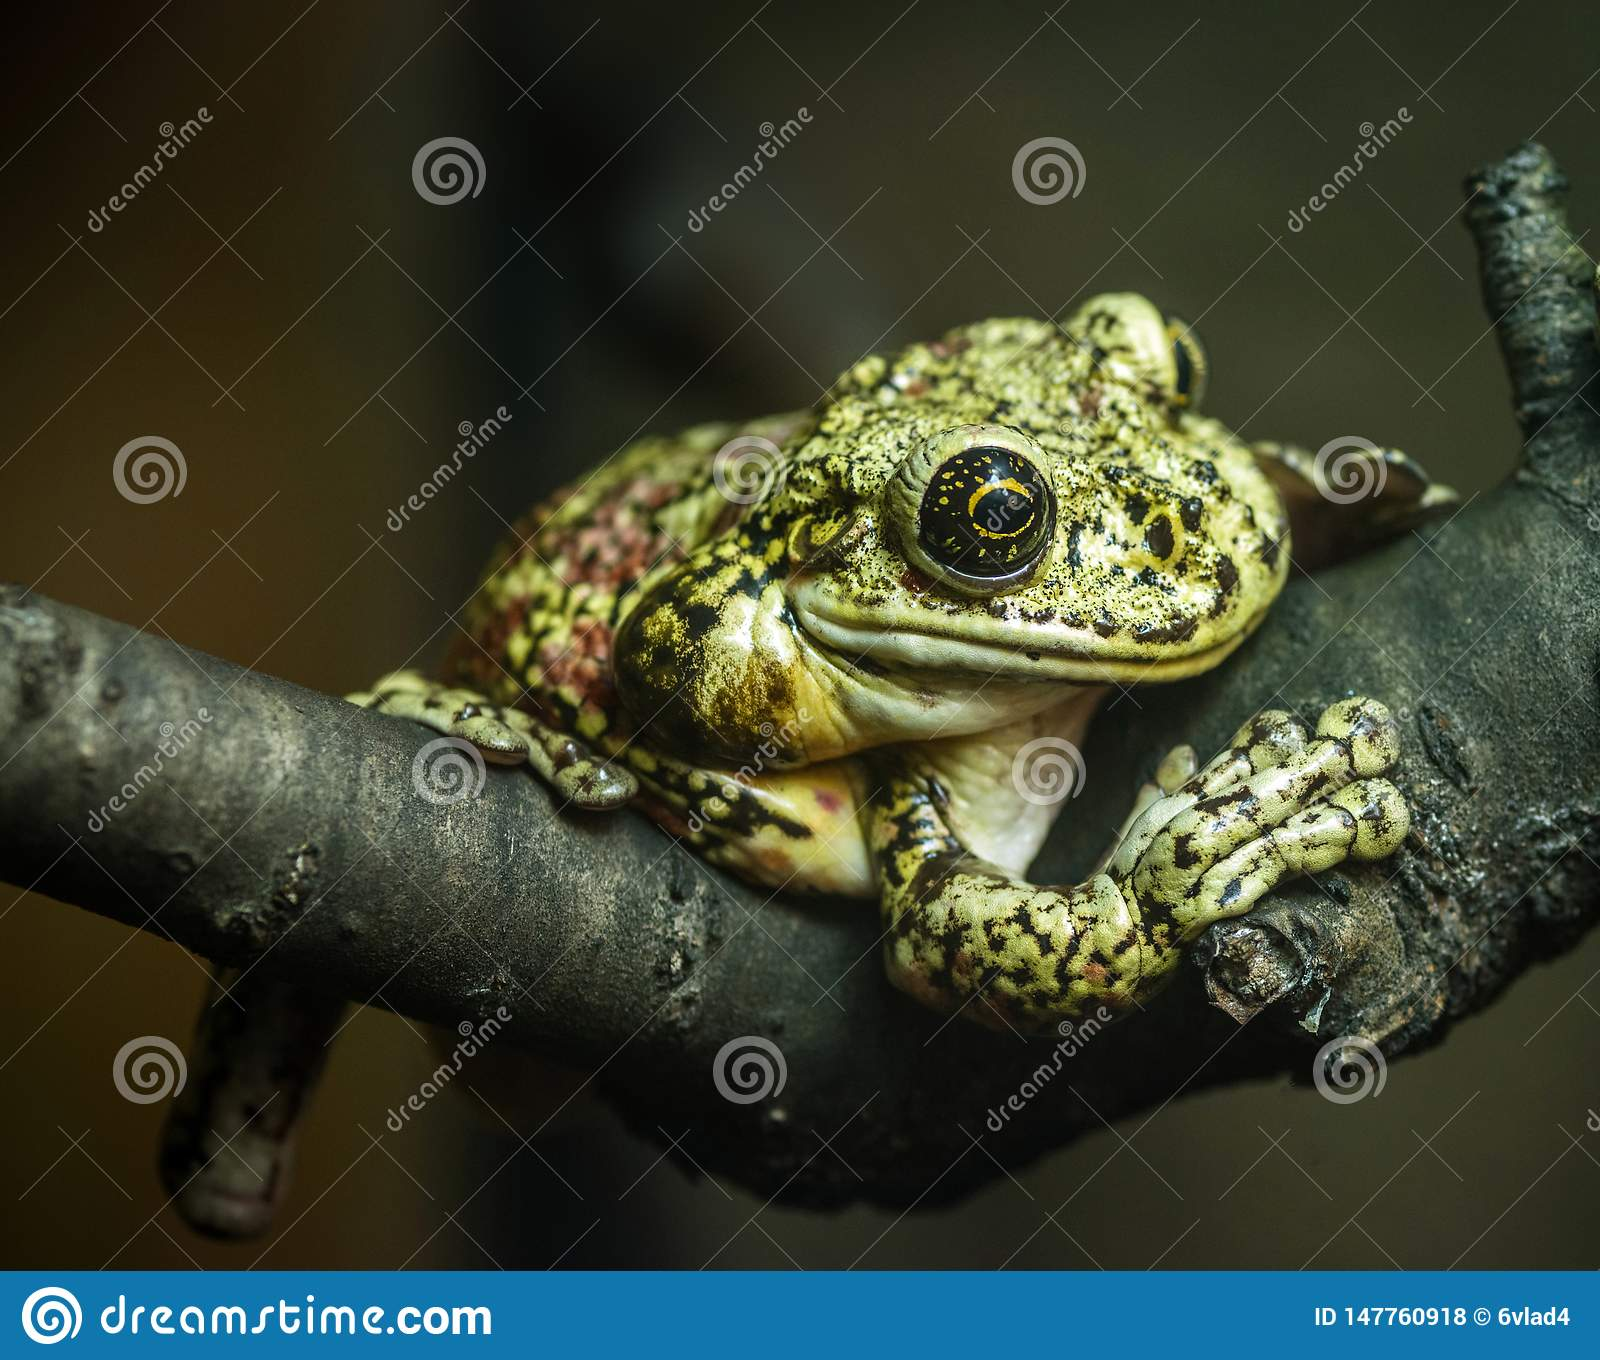 Green frog sitting on a tree branch on a dark background